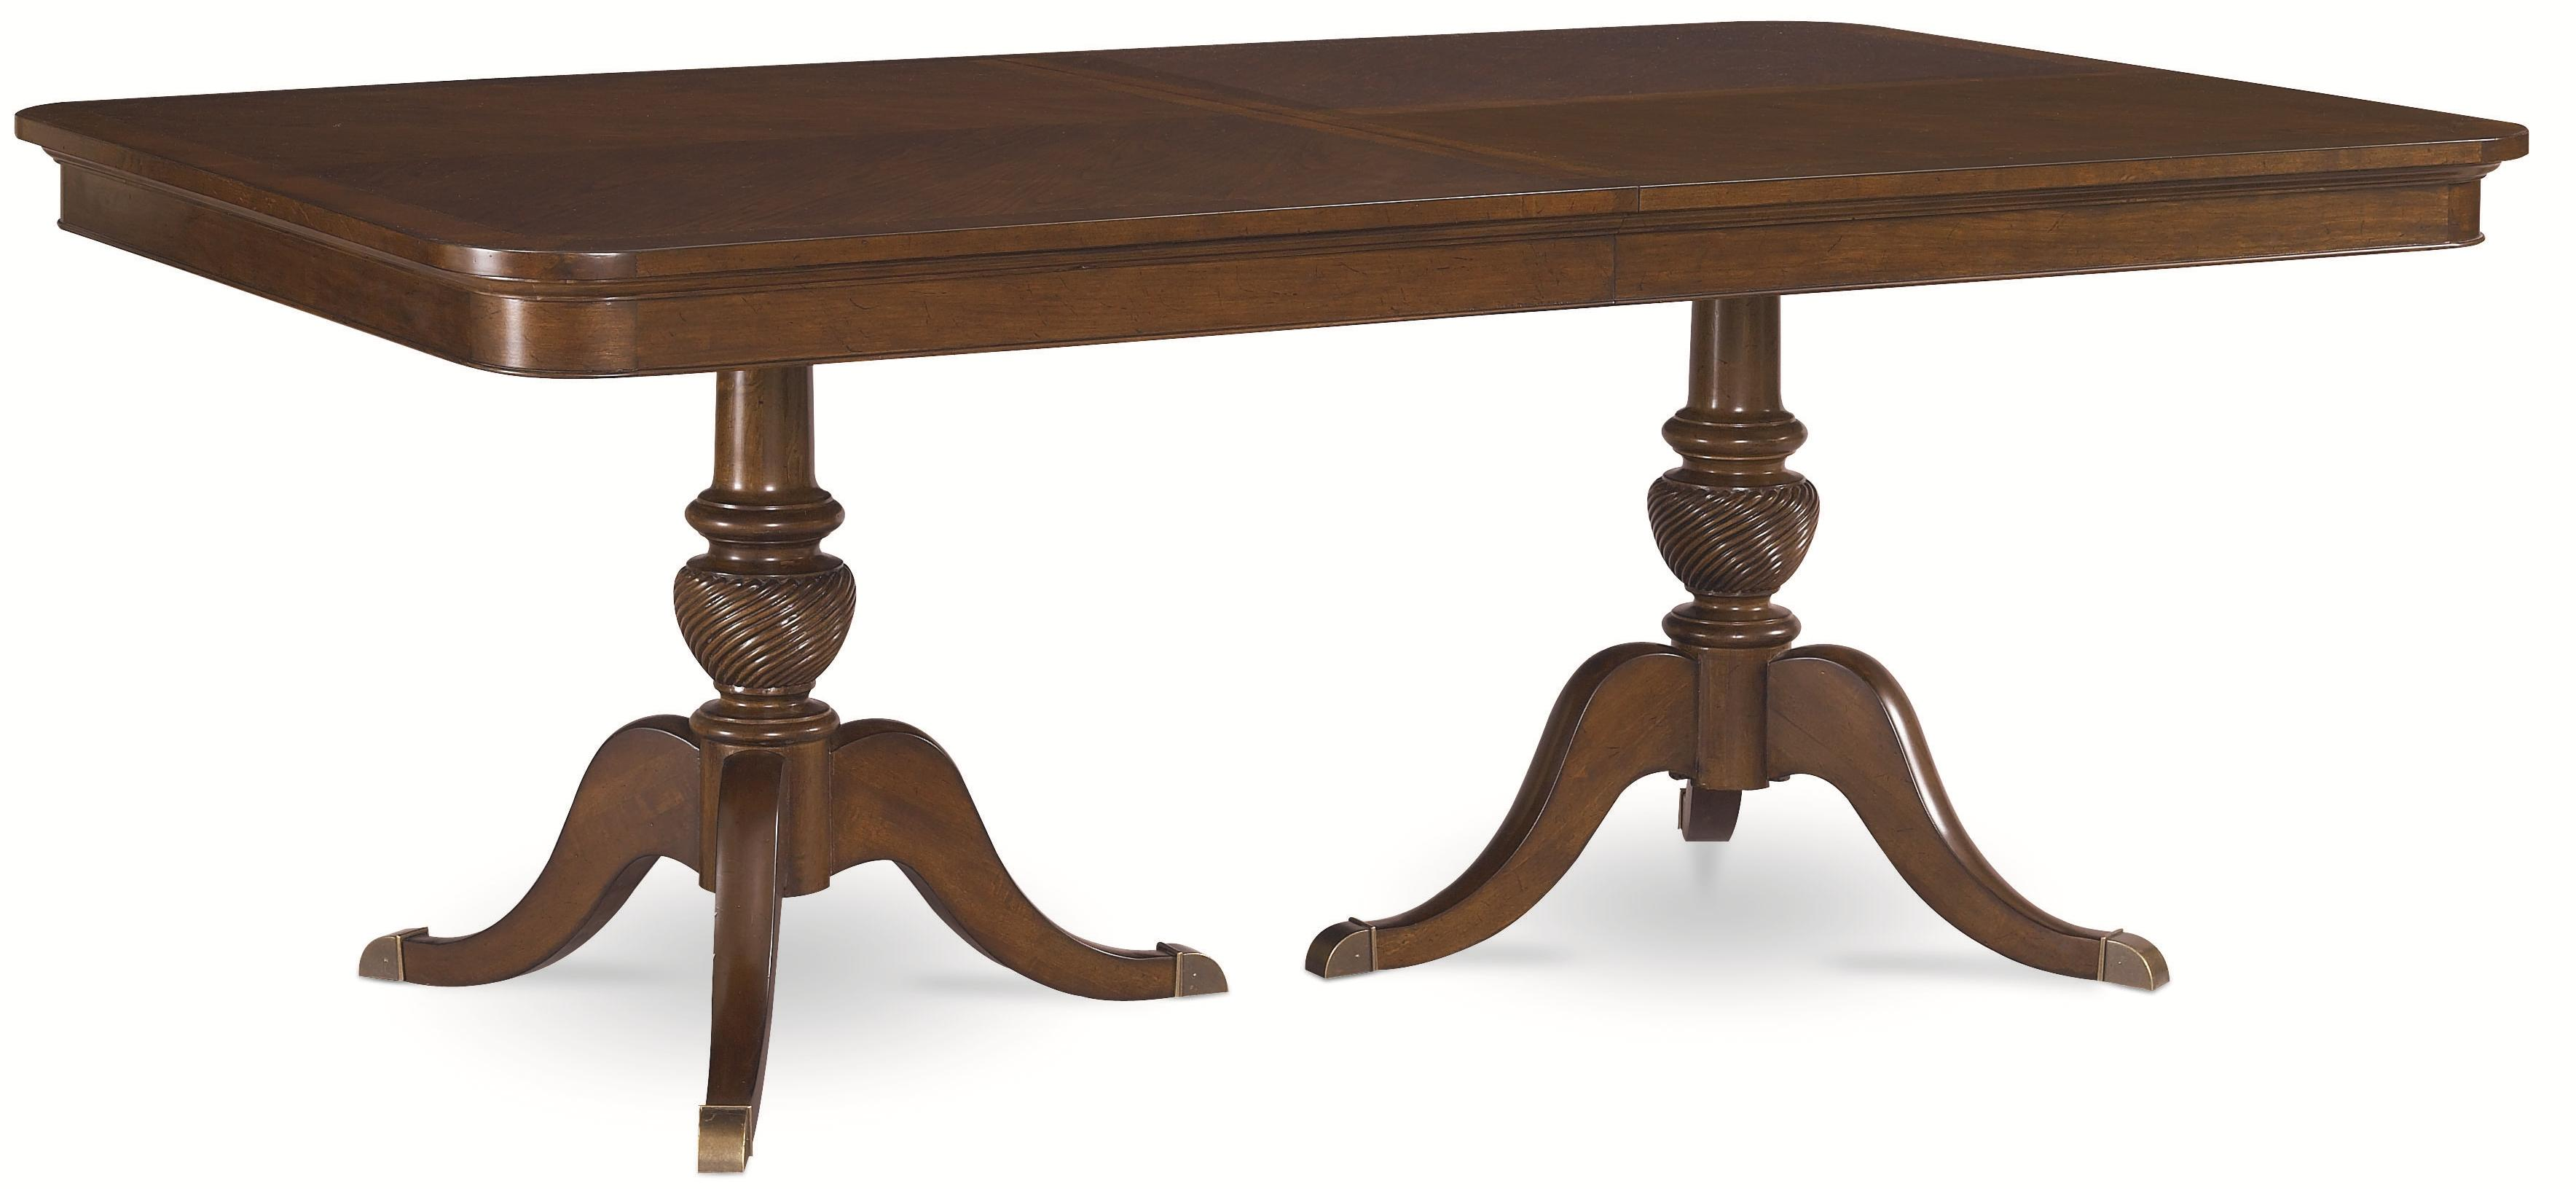 Thomasville® Tate Street Double Pedestal Table - Item Number: 46821-772